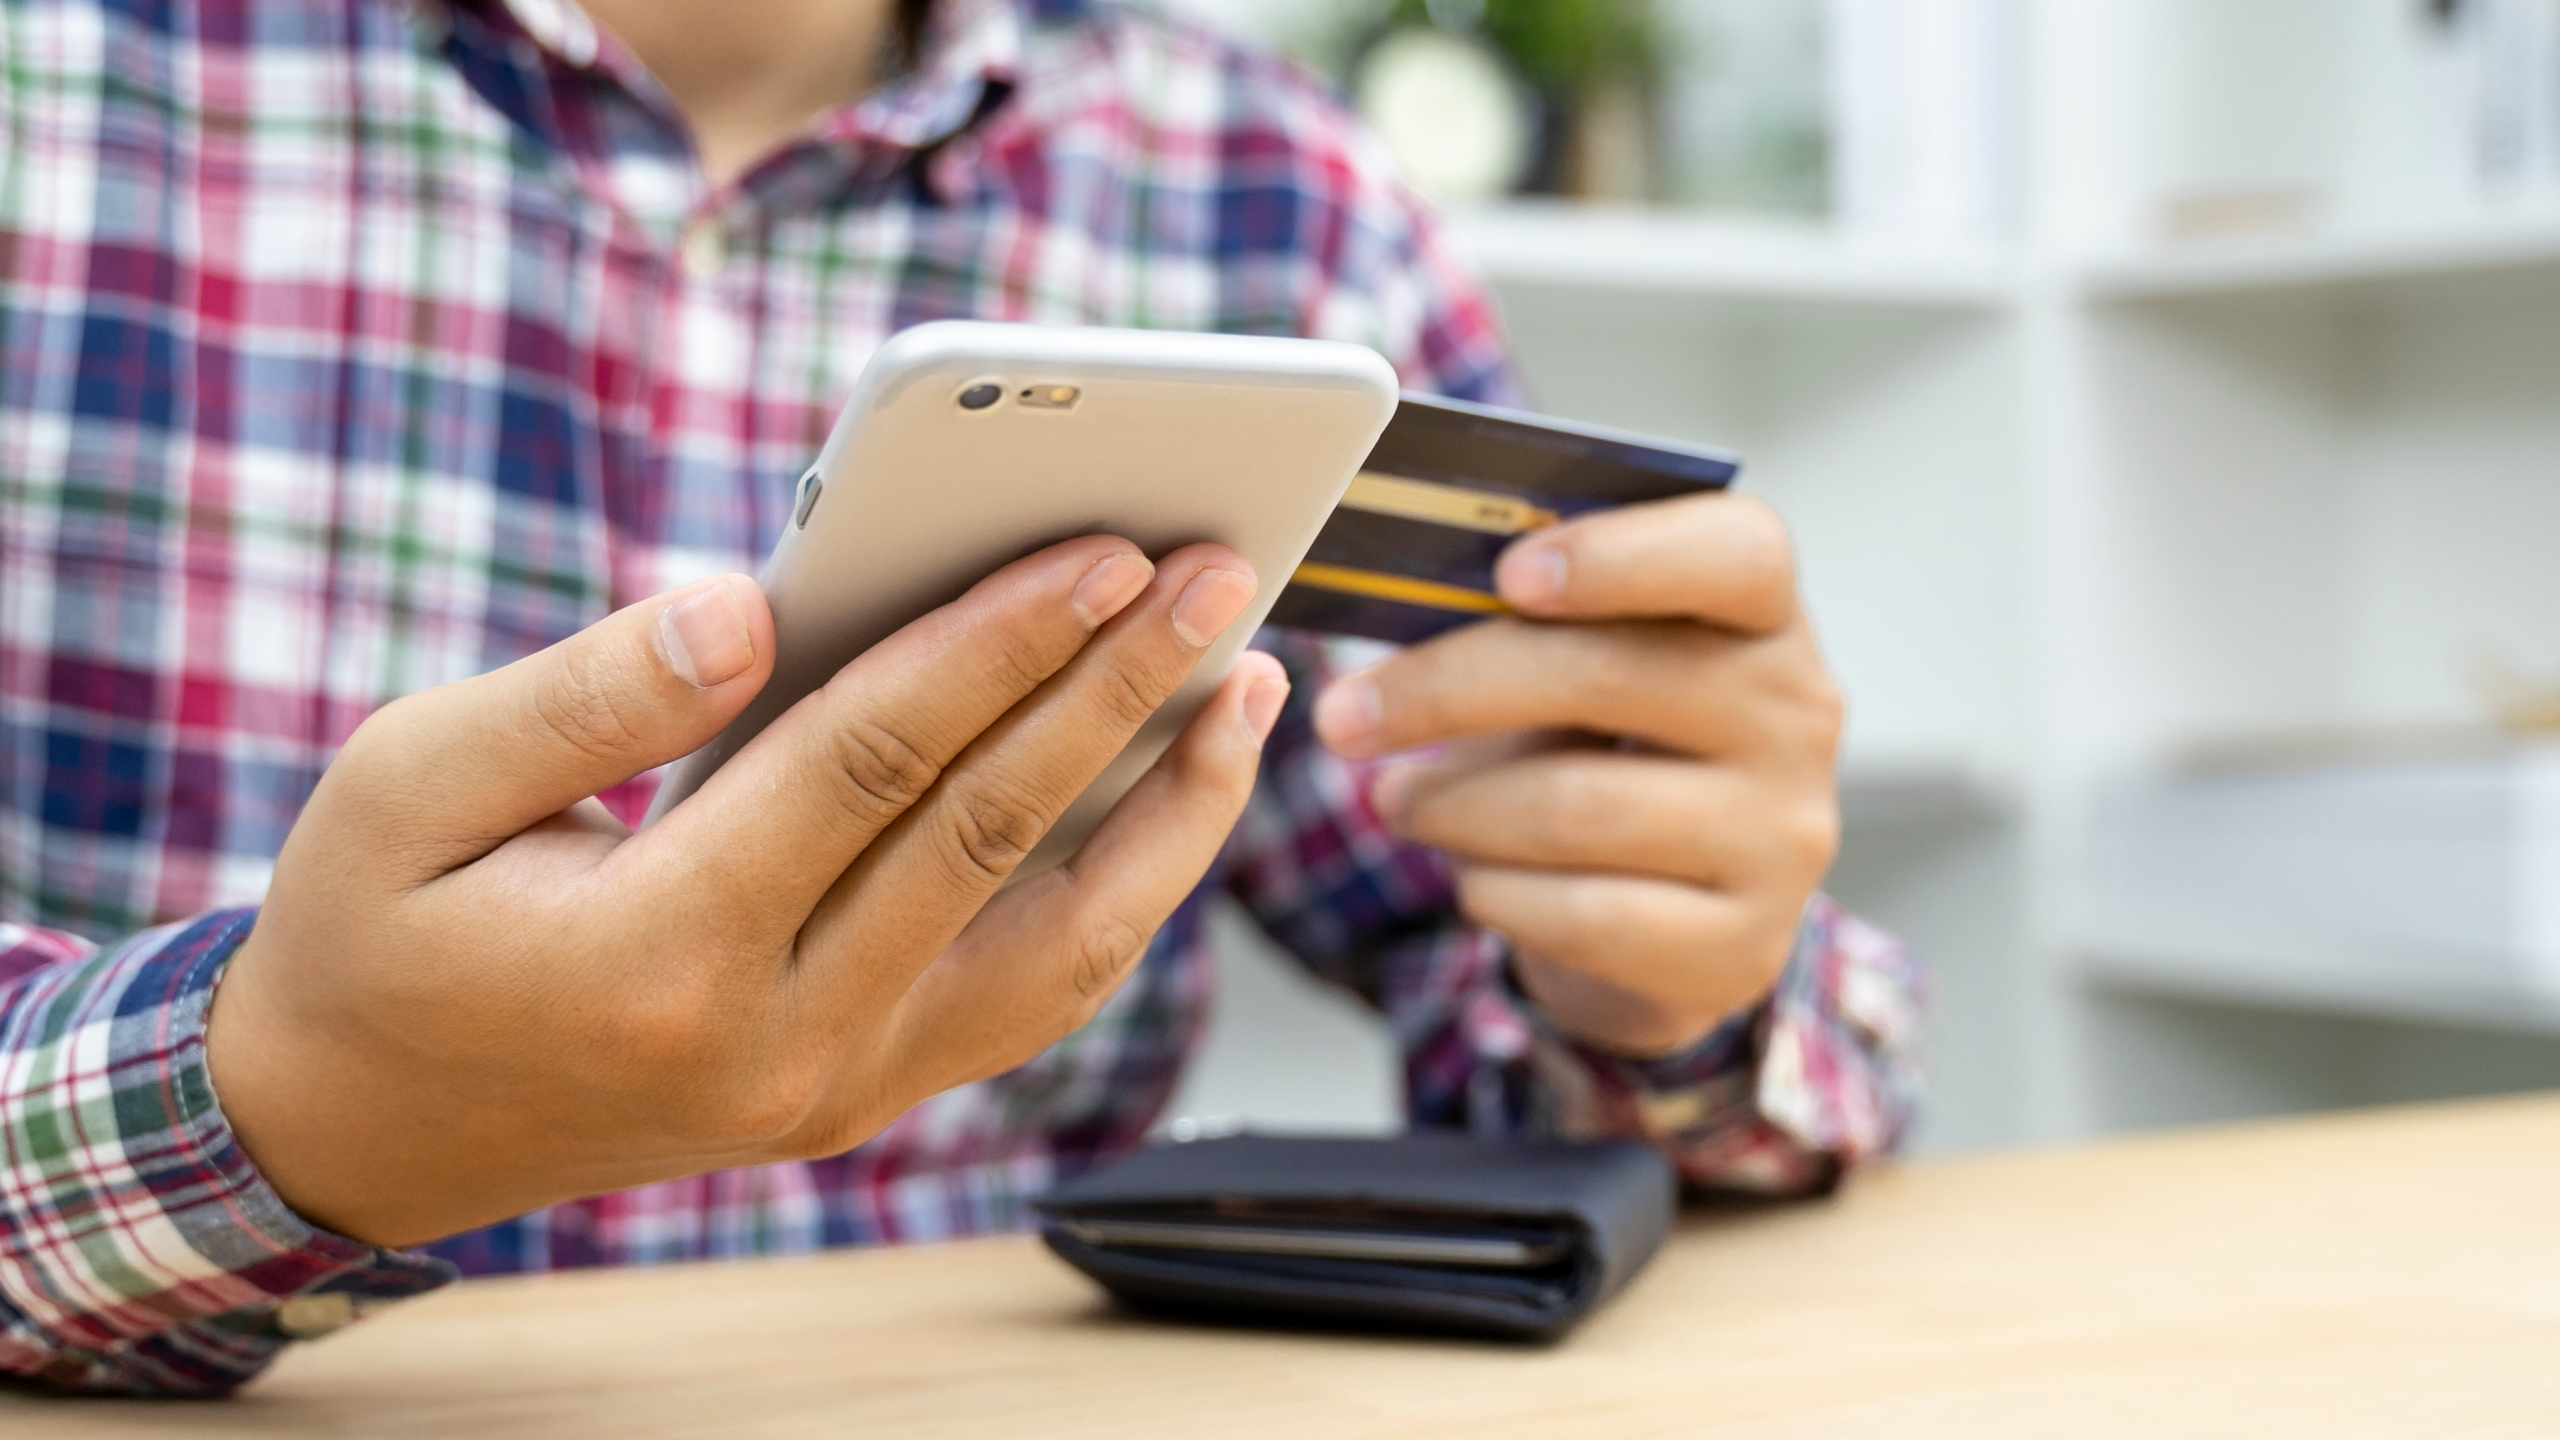 This file photo shows a man holding a credit card and using a phone. (Getty Images)